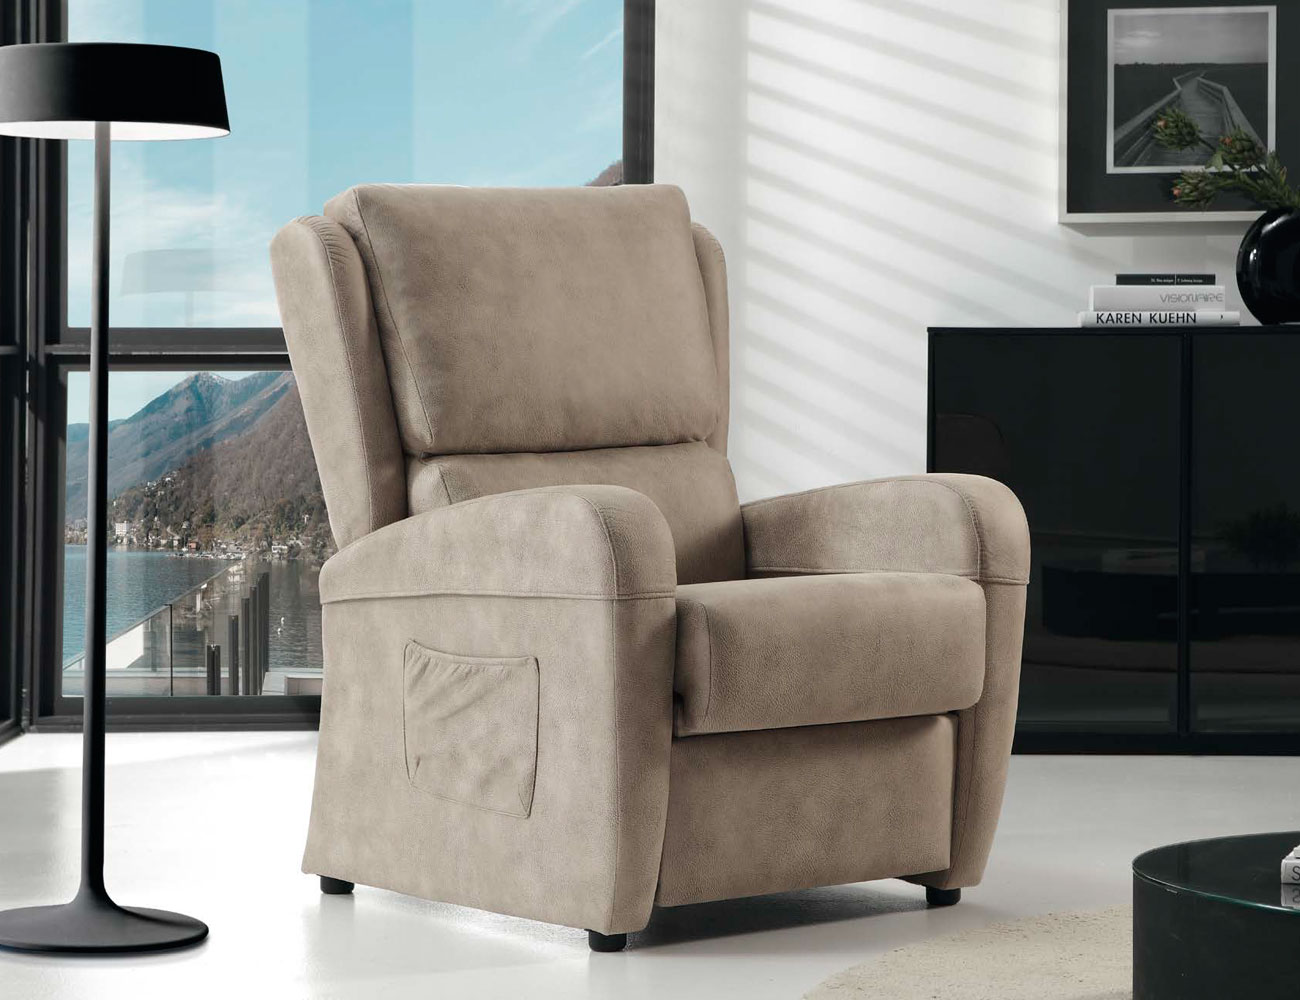 Sillon relax manual jana7